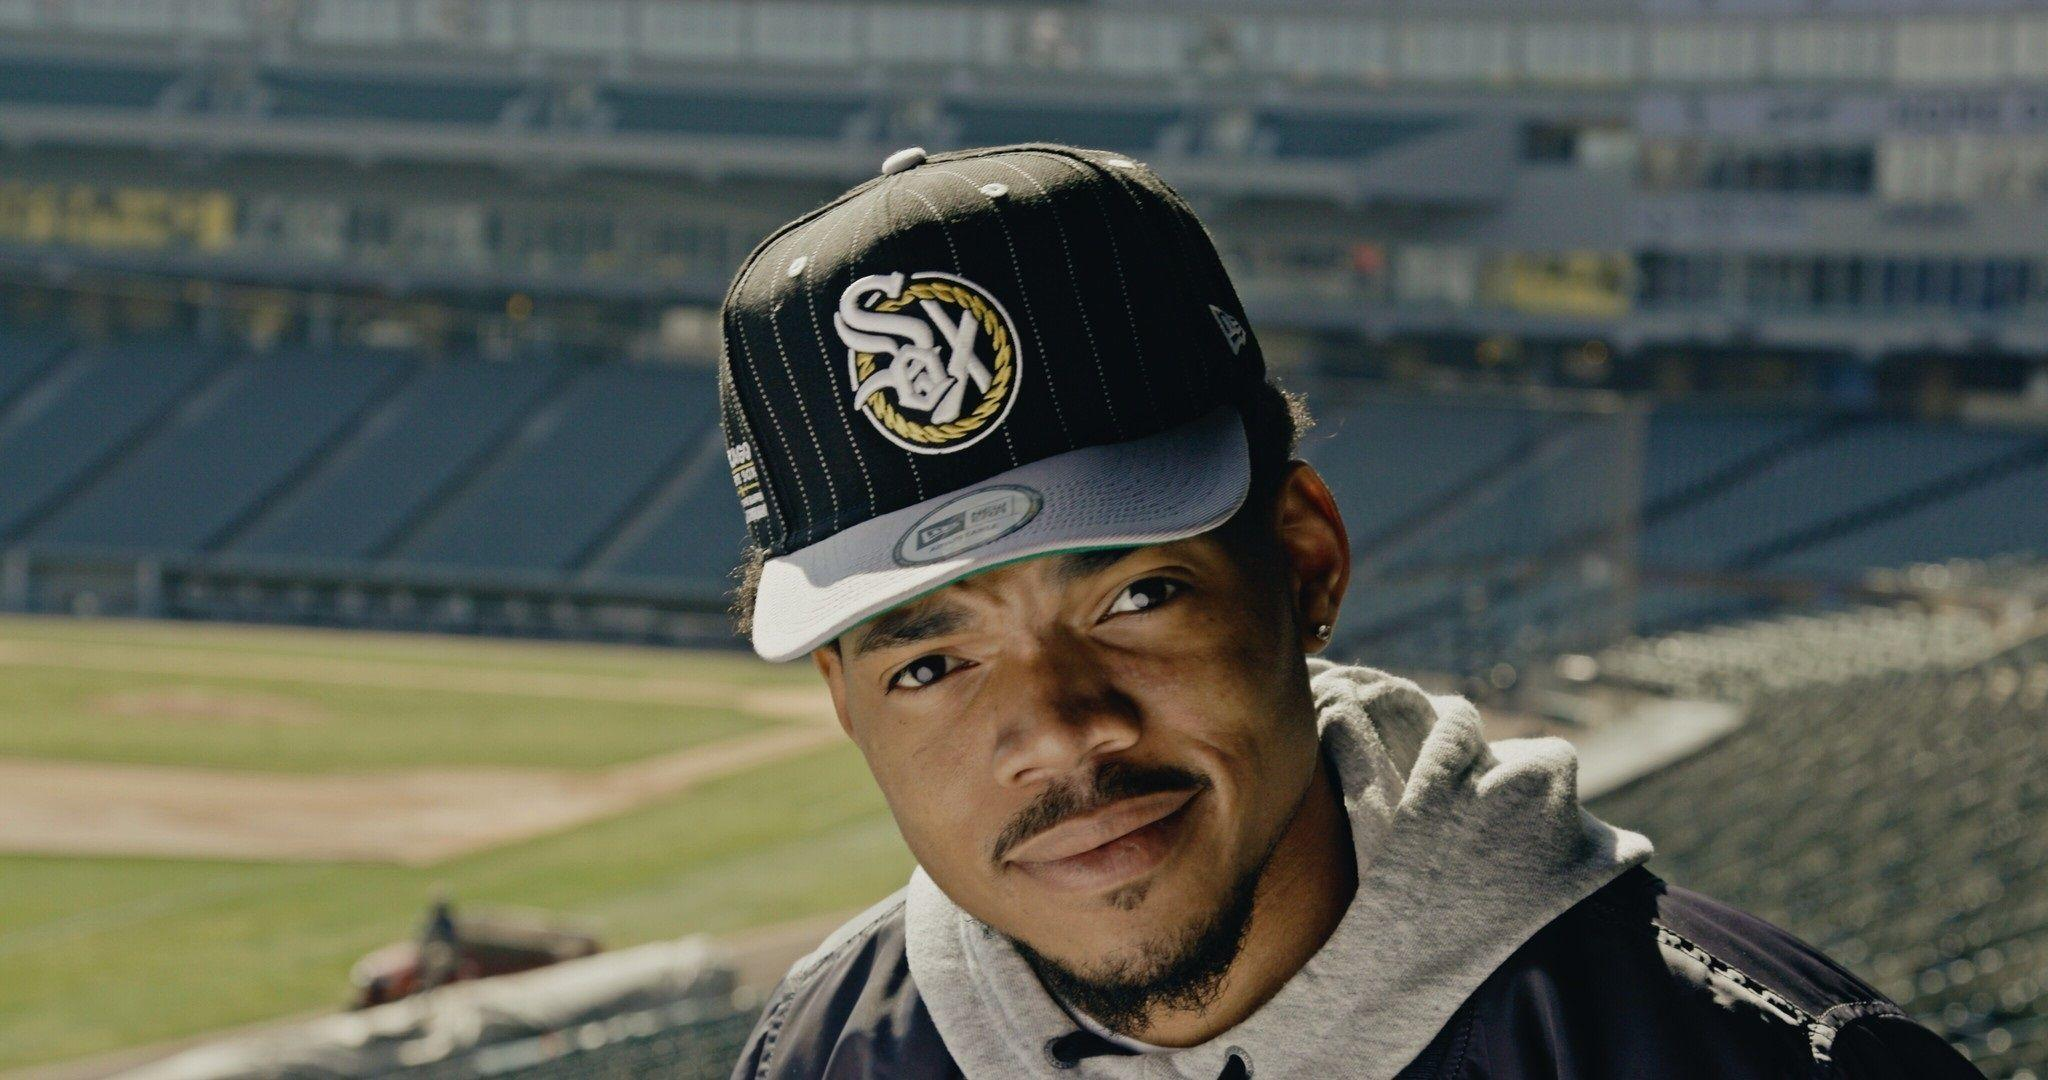 Best Chance The Rapper Wallpapers Desktop